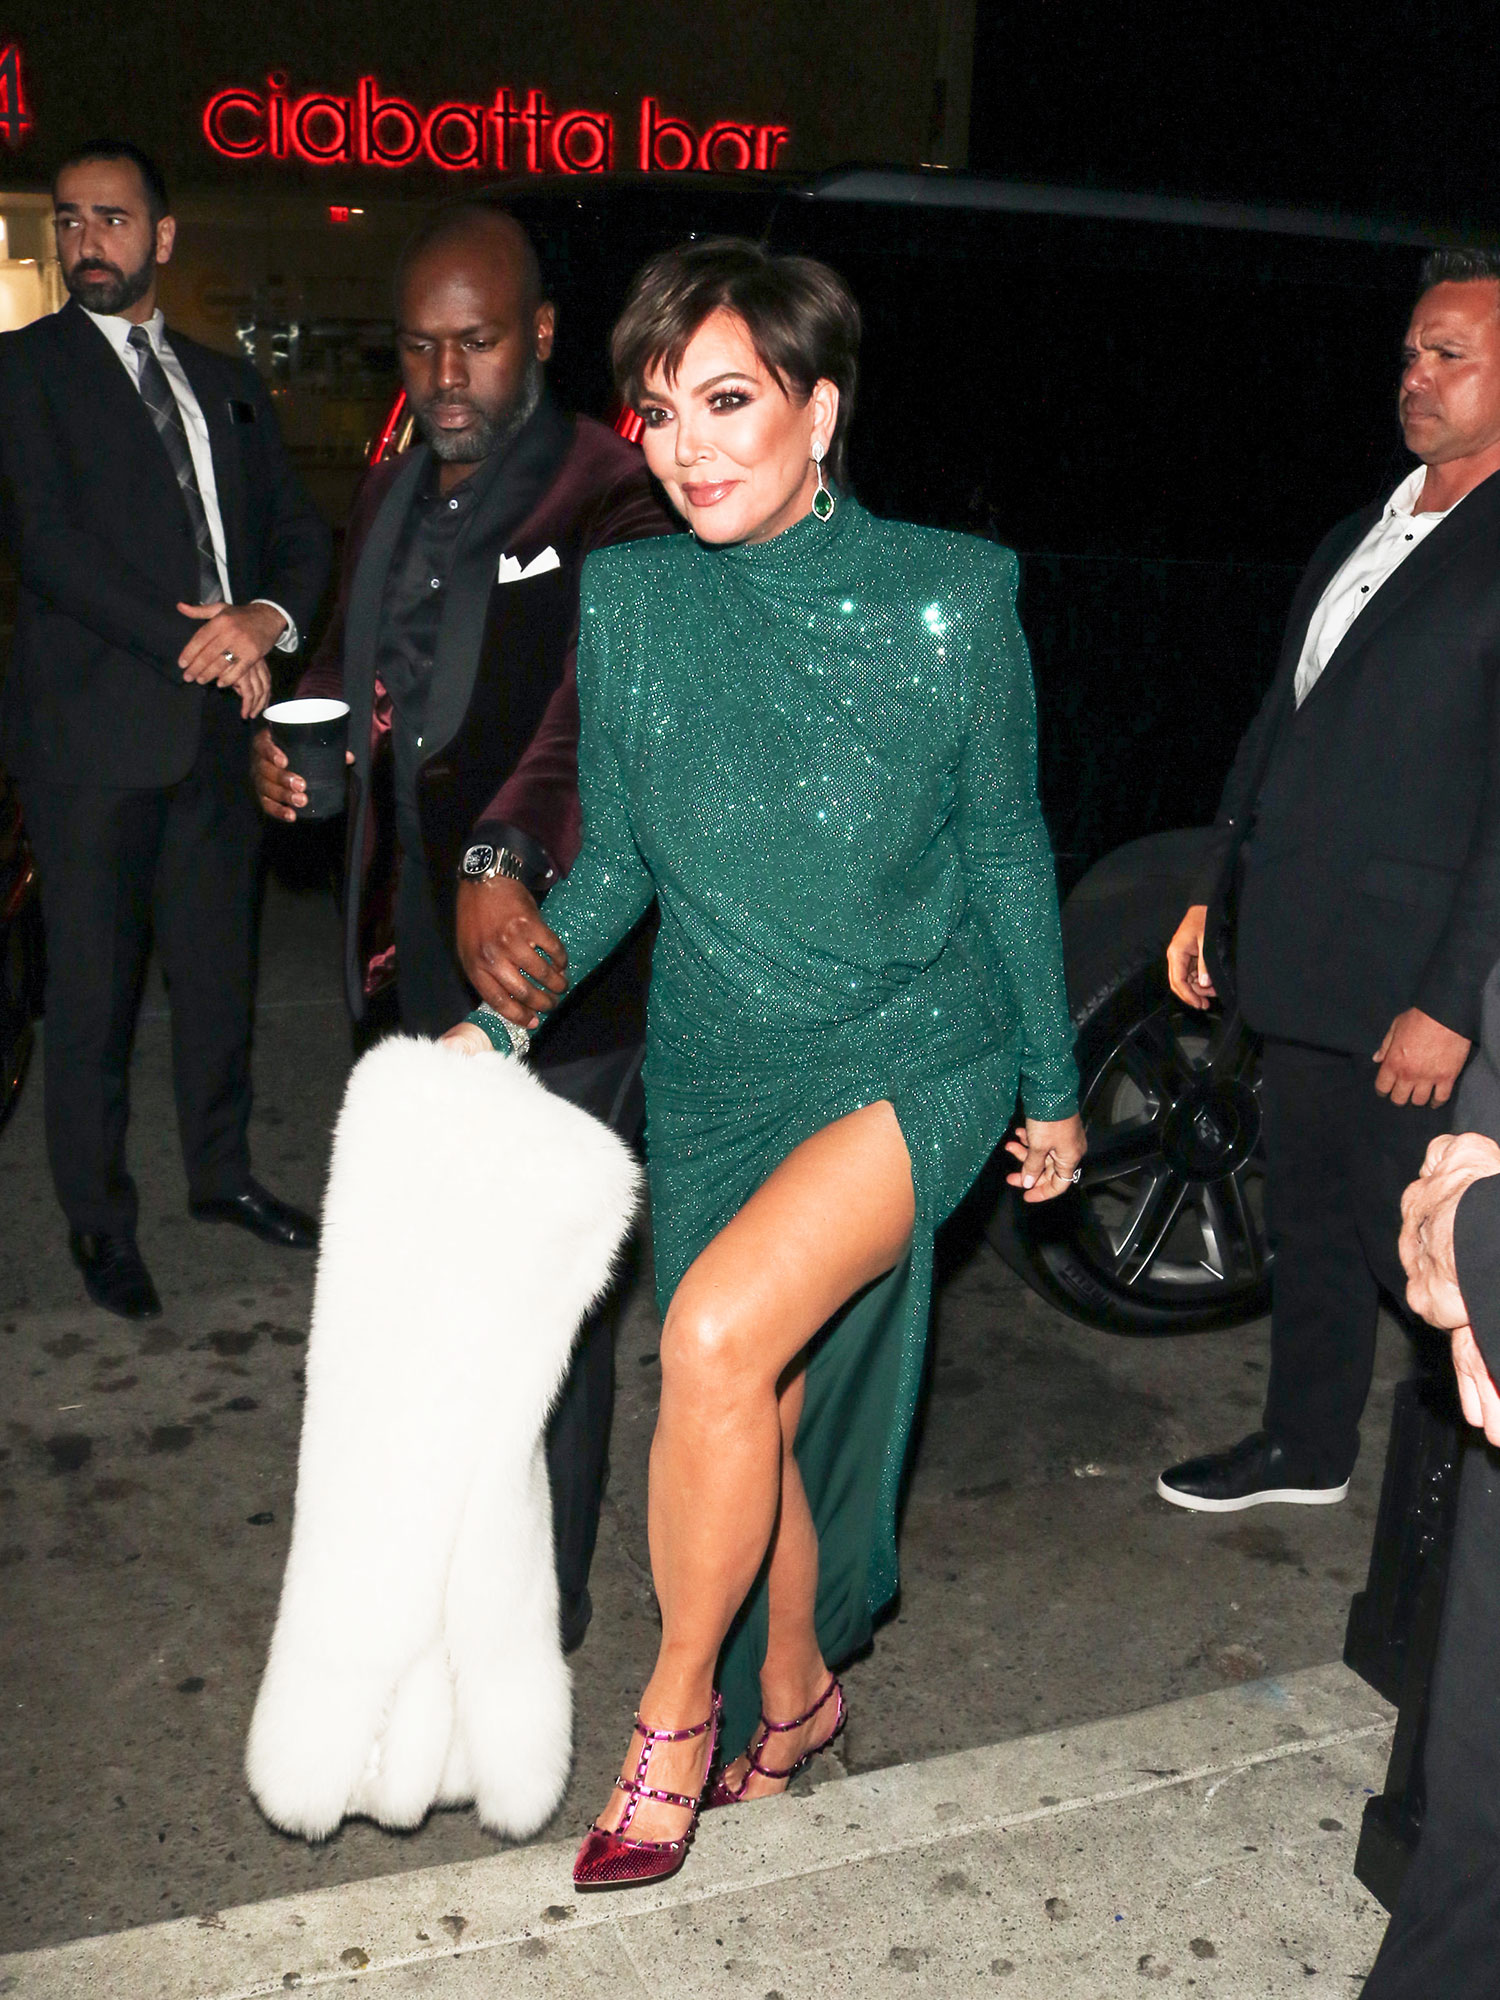 Kris Jenner All the Disco Star Style From Diana Ross' 75th Birthday Party - We were green with envy over the Keeping Up With the Kardashians star's shimmering emerald frock and hot pink Valentino pumps.